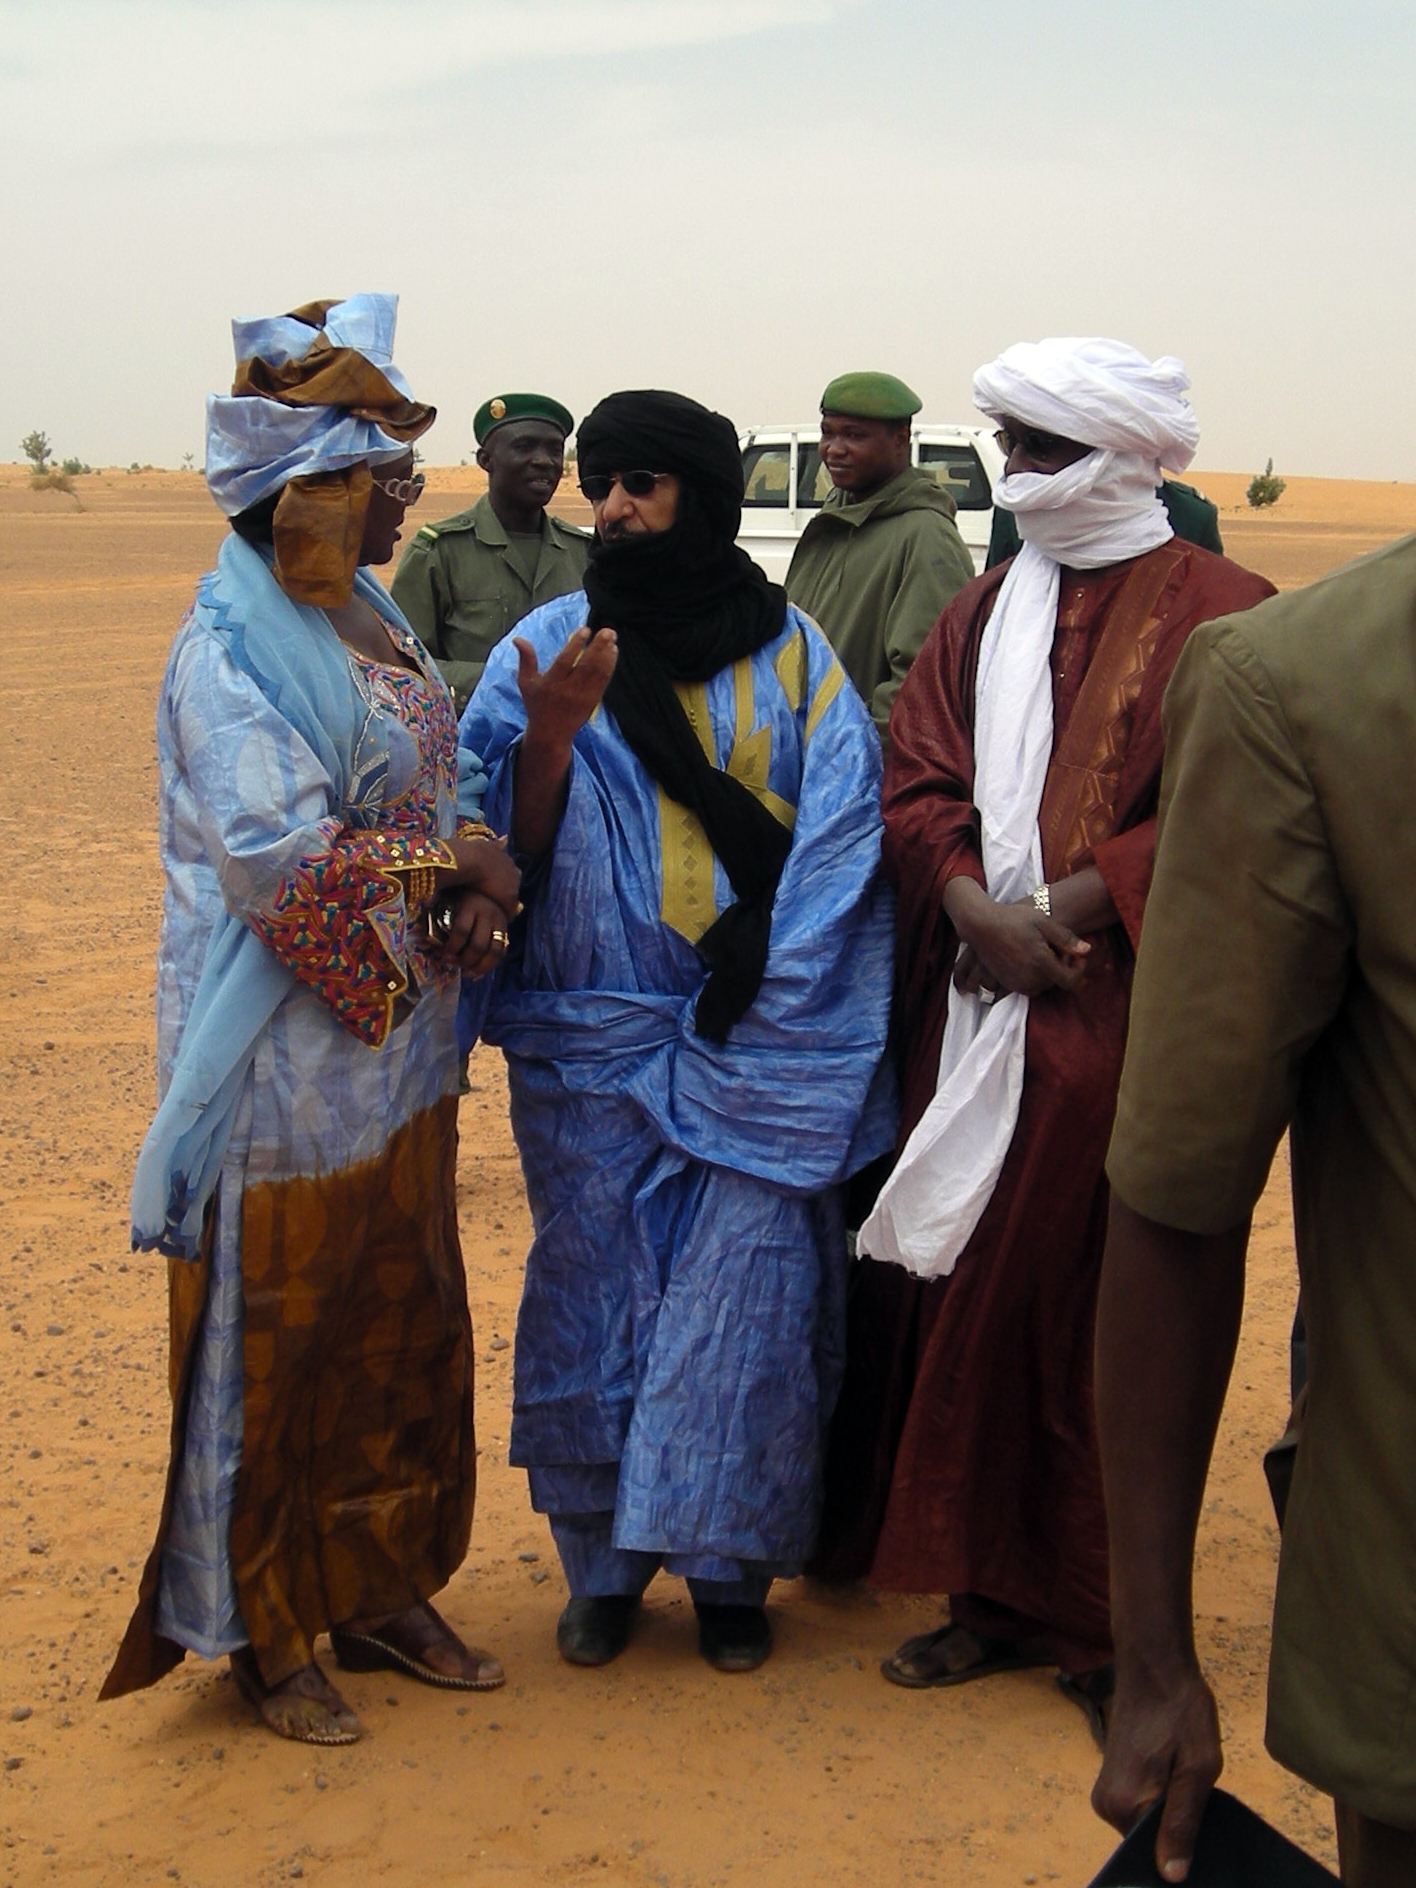 On our way to the festival in Bourem. Minister of culture El Mokhtar and Madame Toure,Jan 2011.